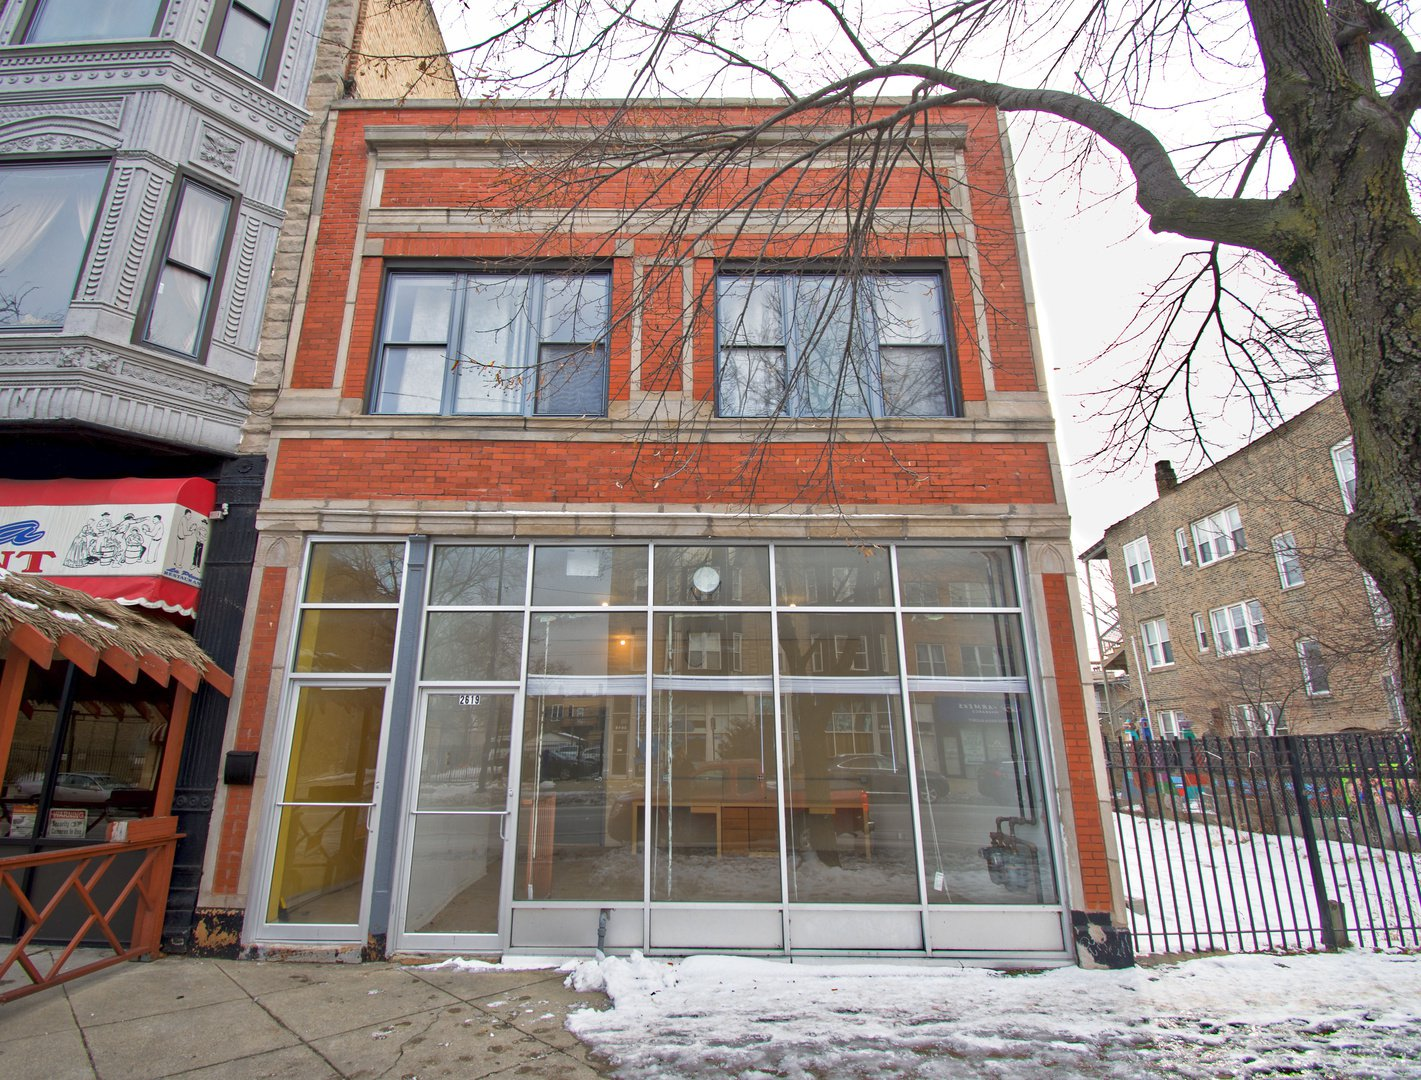 Main Photo: 2619 Division Street in Chicago: CHI - West Town Commercial Sale for sale ()  : MLS®# MRD10940187